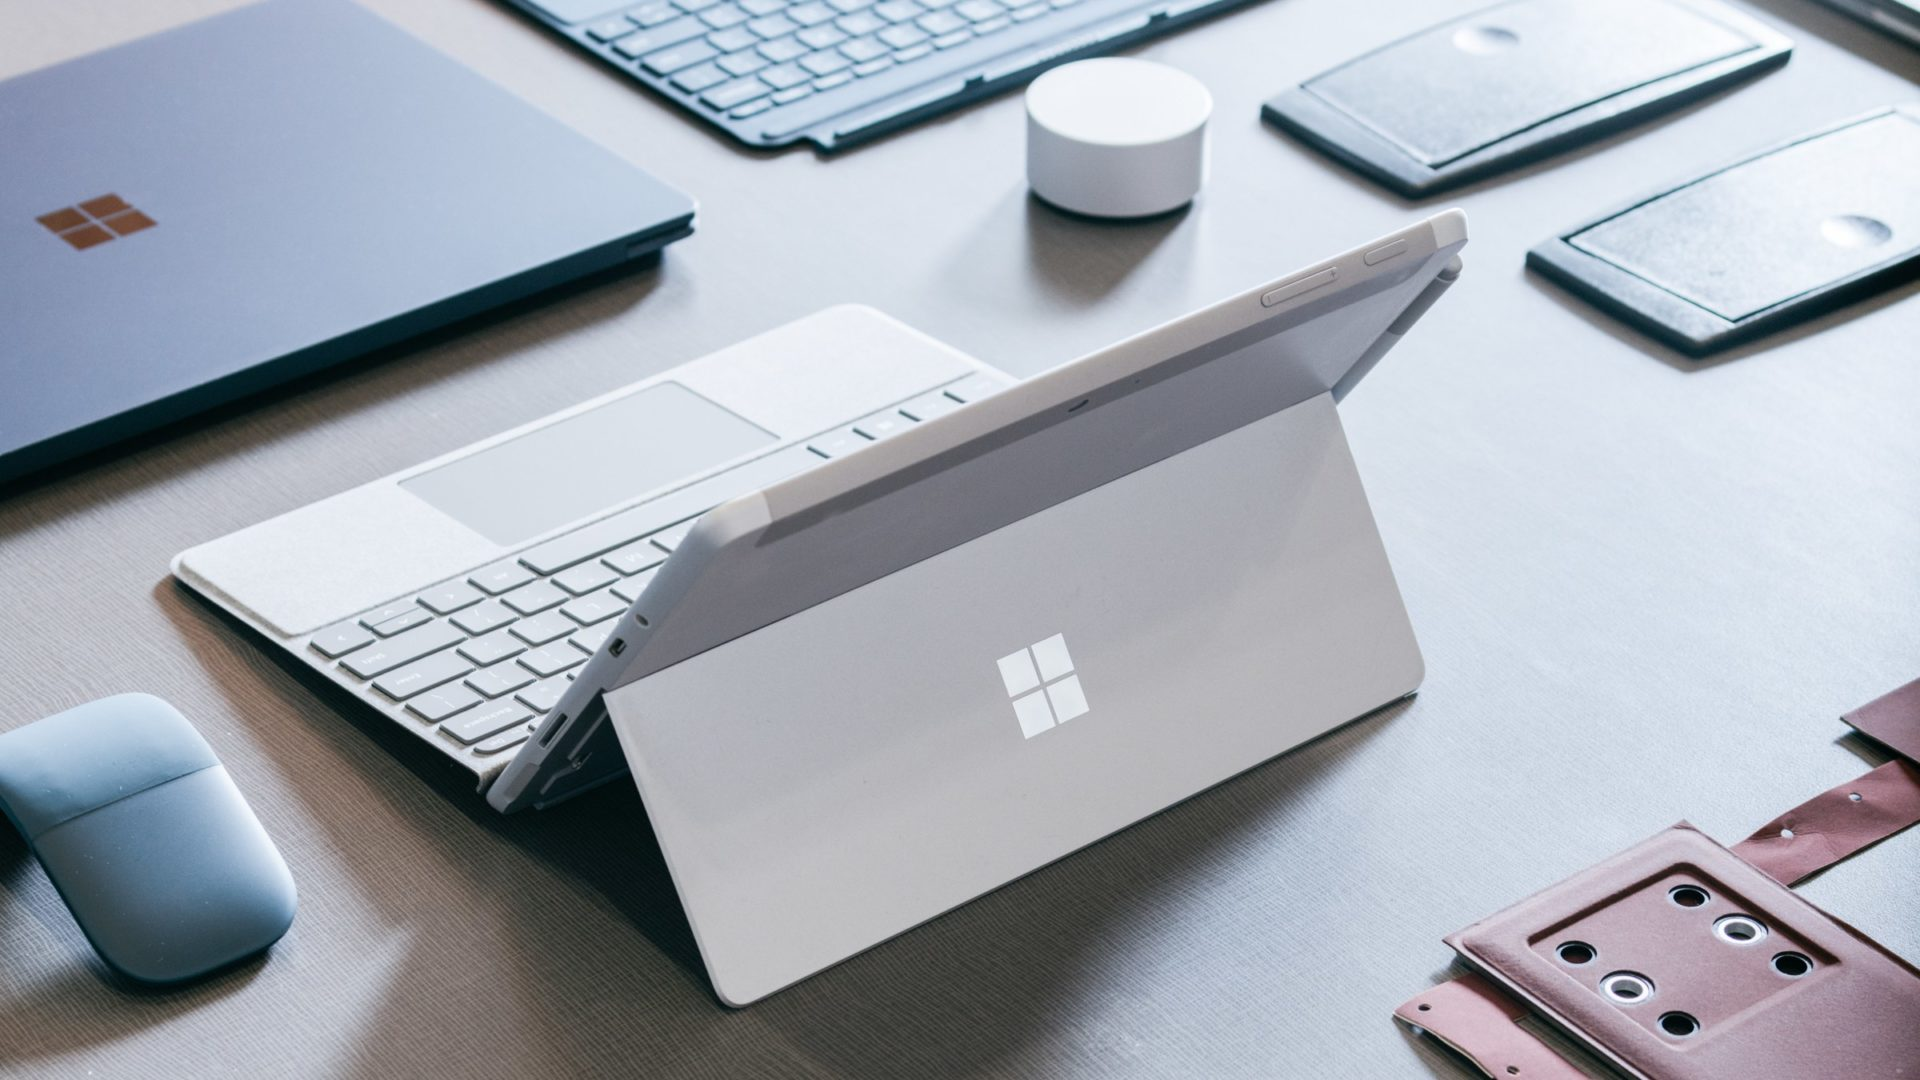 surface go feature